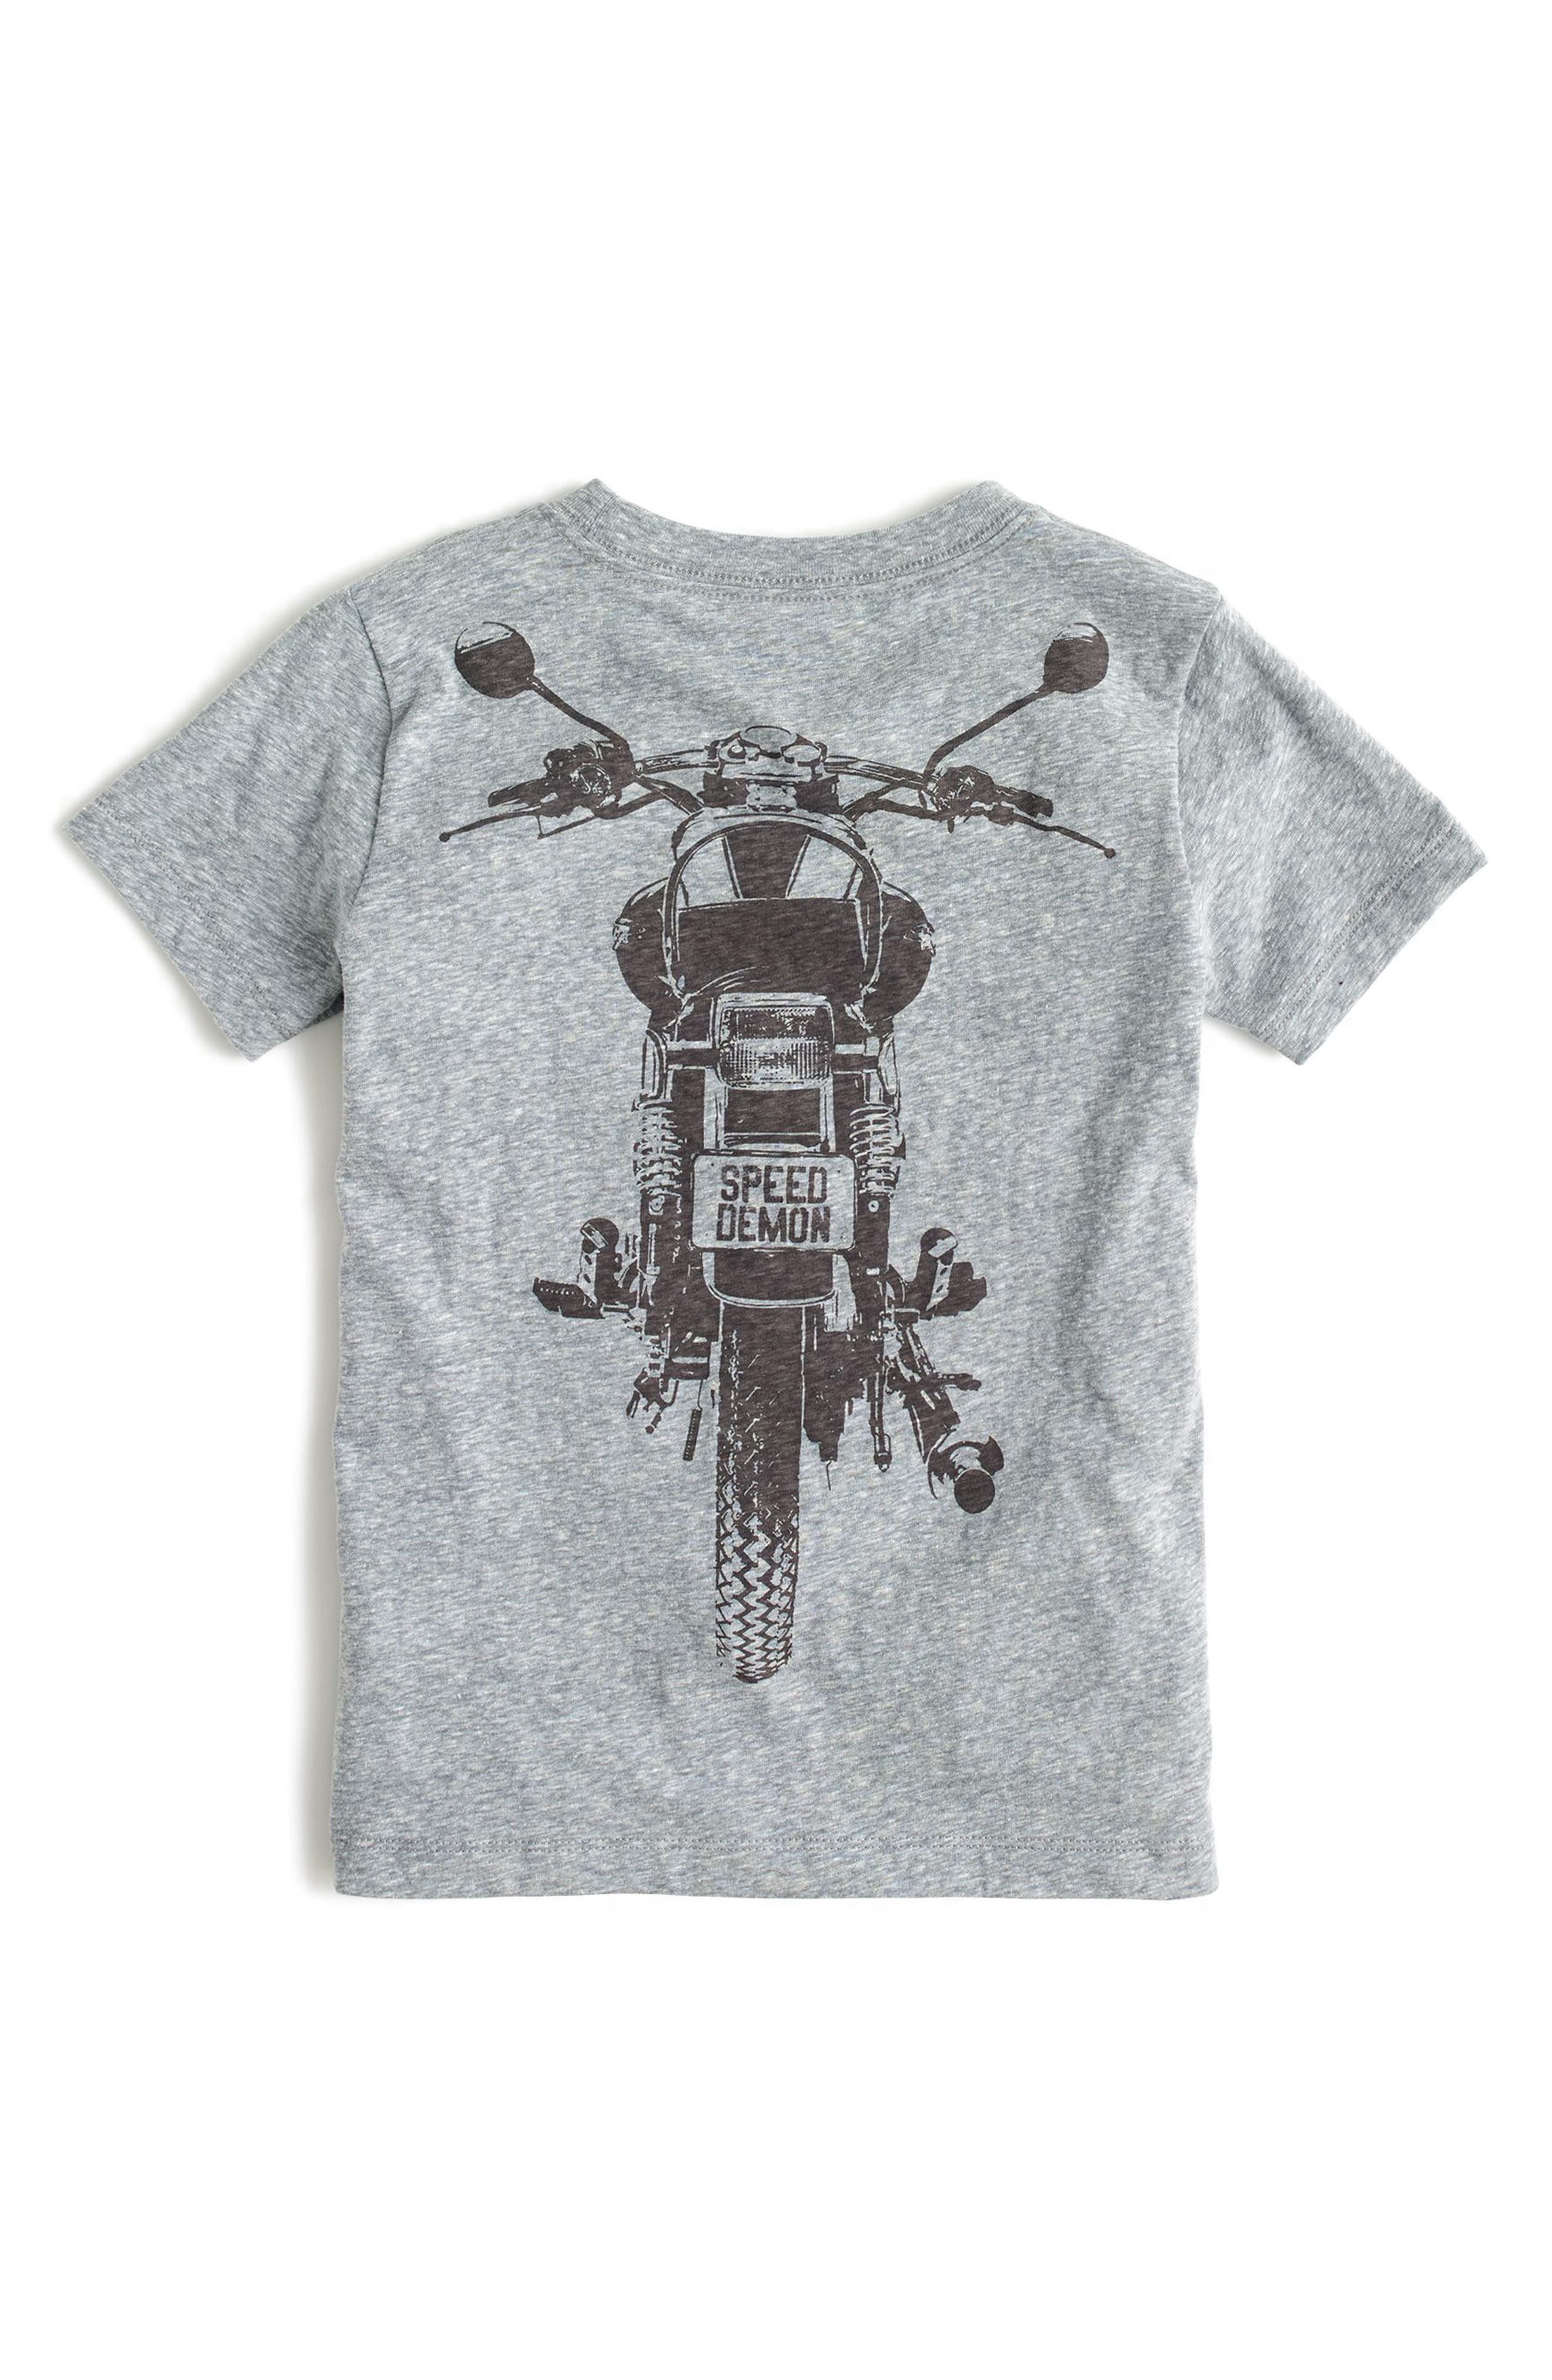 Glow in the Dark Motorcycle Graphic T-Shirt,                             Main thumbnail 1, color,